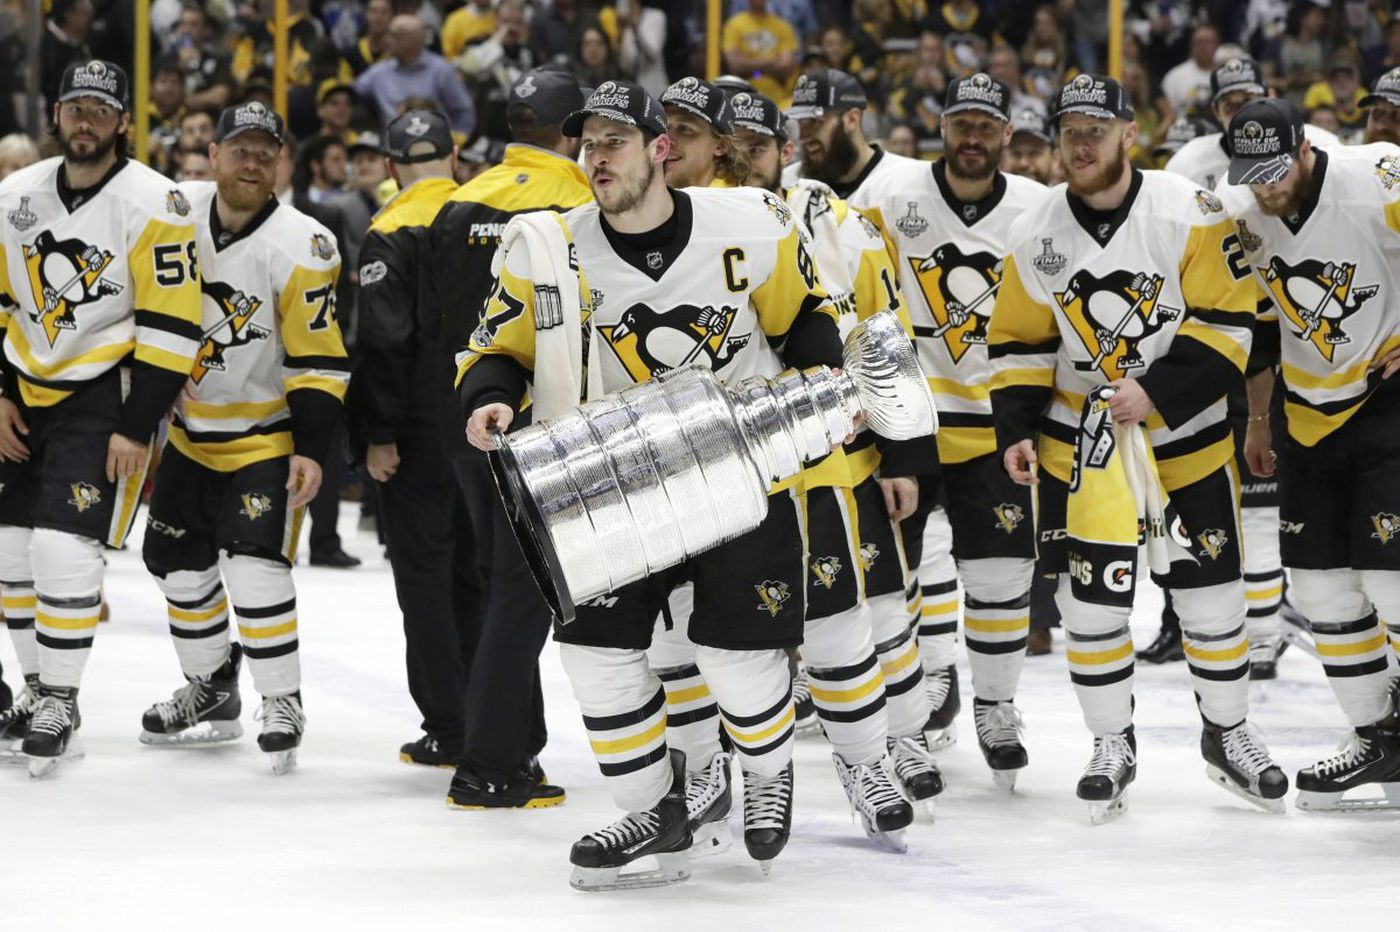 Why Pittsburgh is Pa.'s sports capital, Trump's Jerusalem declaration, birth control's cancer risk | Morning Newsletter